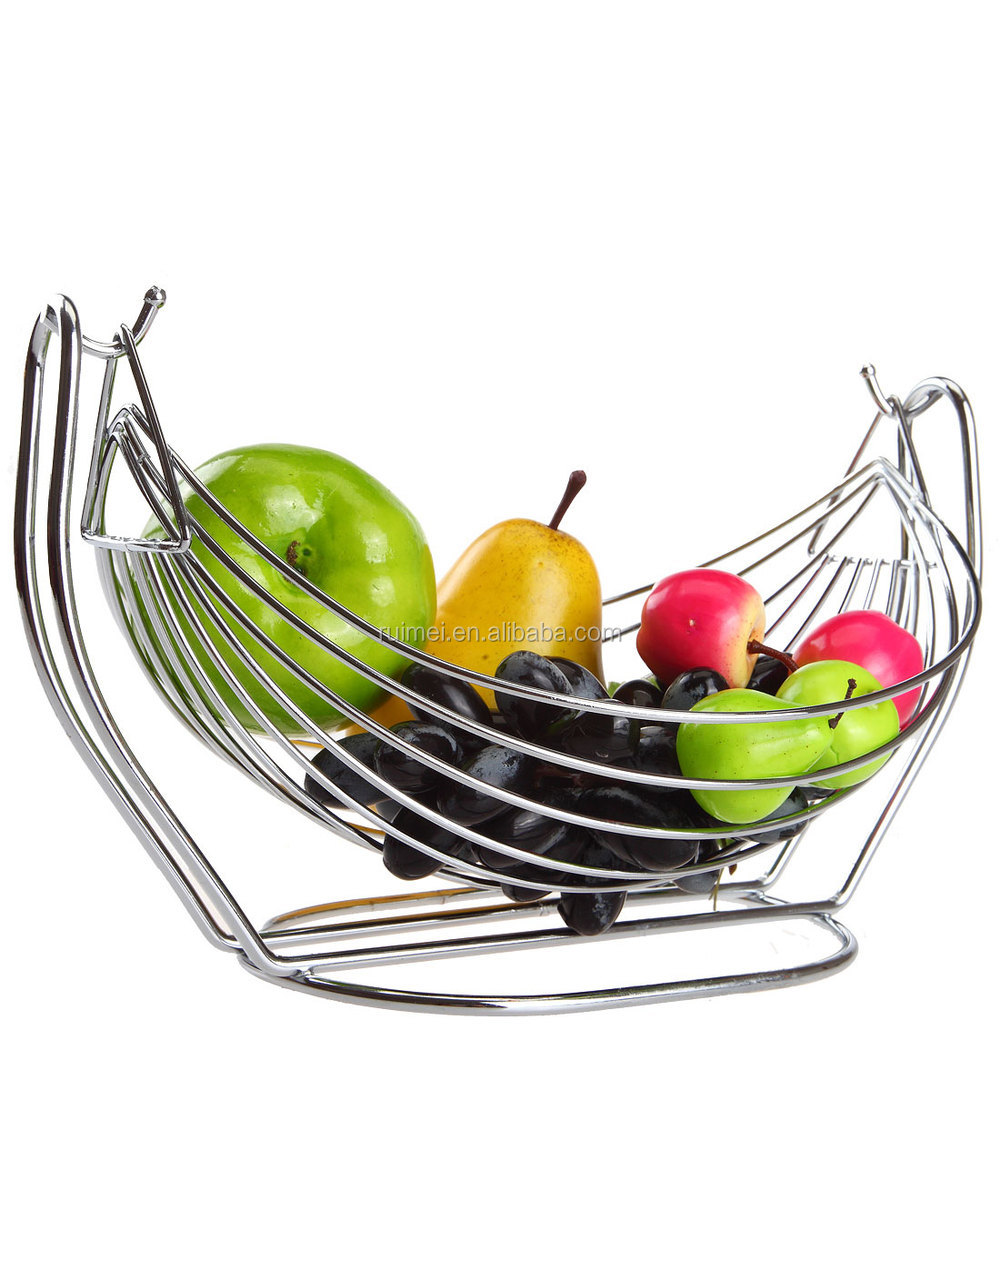 modern wholesale wire fruit basket with net cover  buy wire fruit  - modern wholesale wire fruit basket with net cover